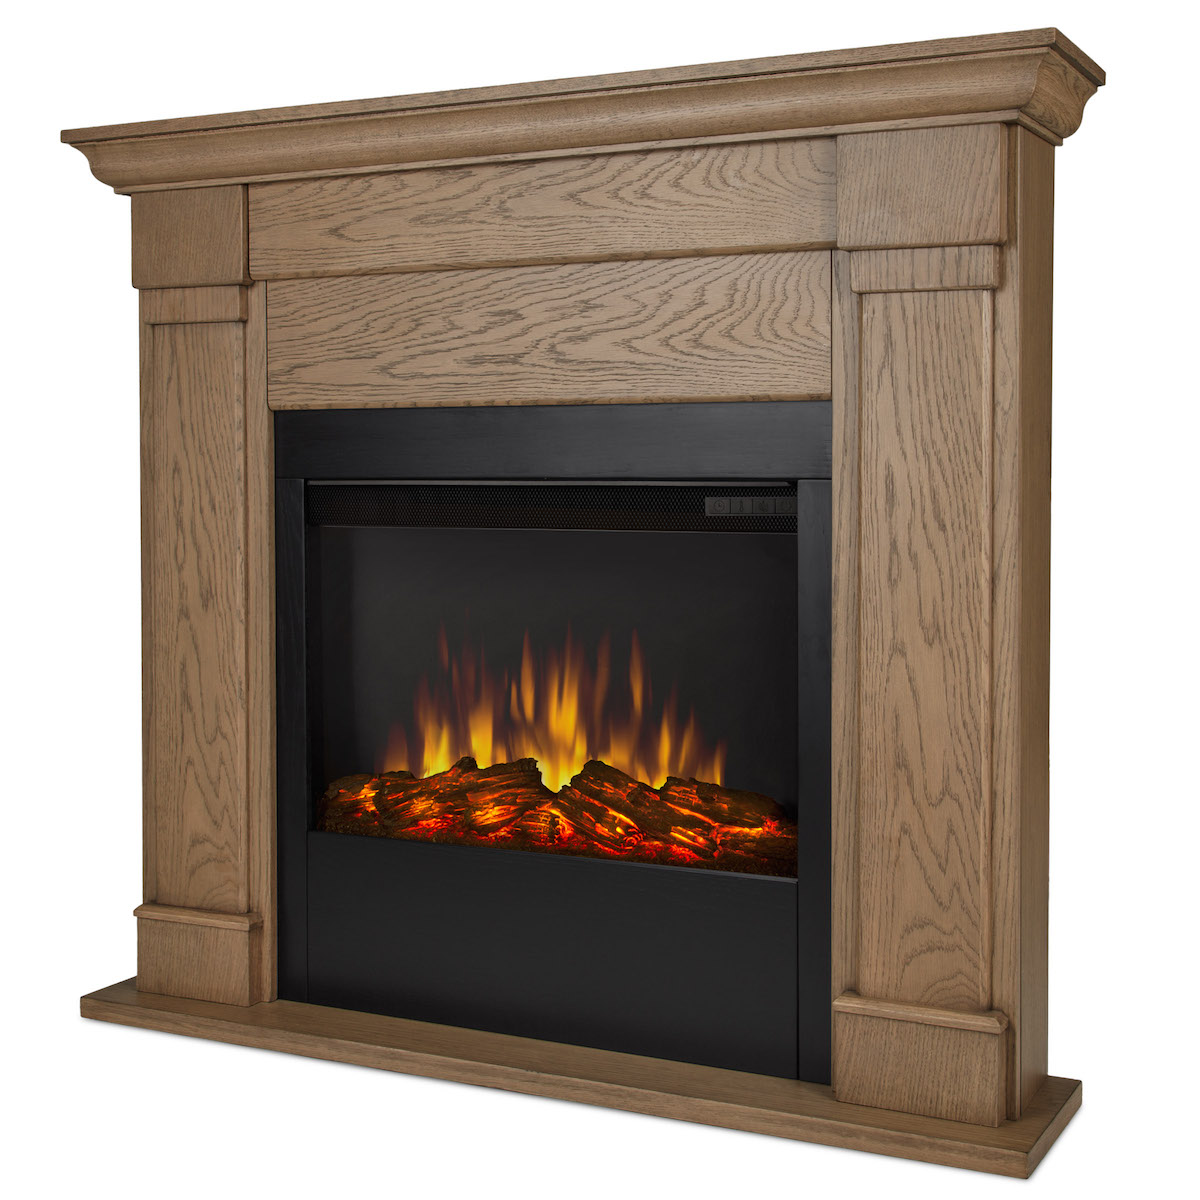 Real flame lowry slim line electric fireplace in blonde oak for Direct flame